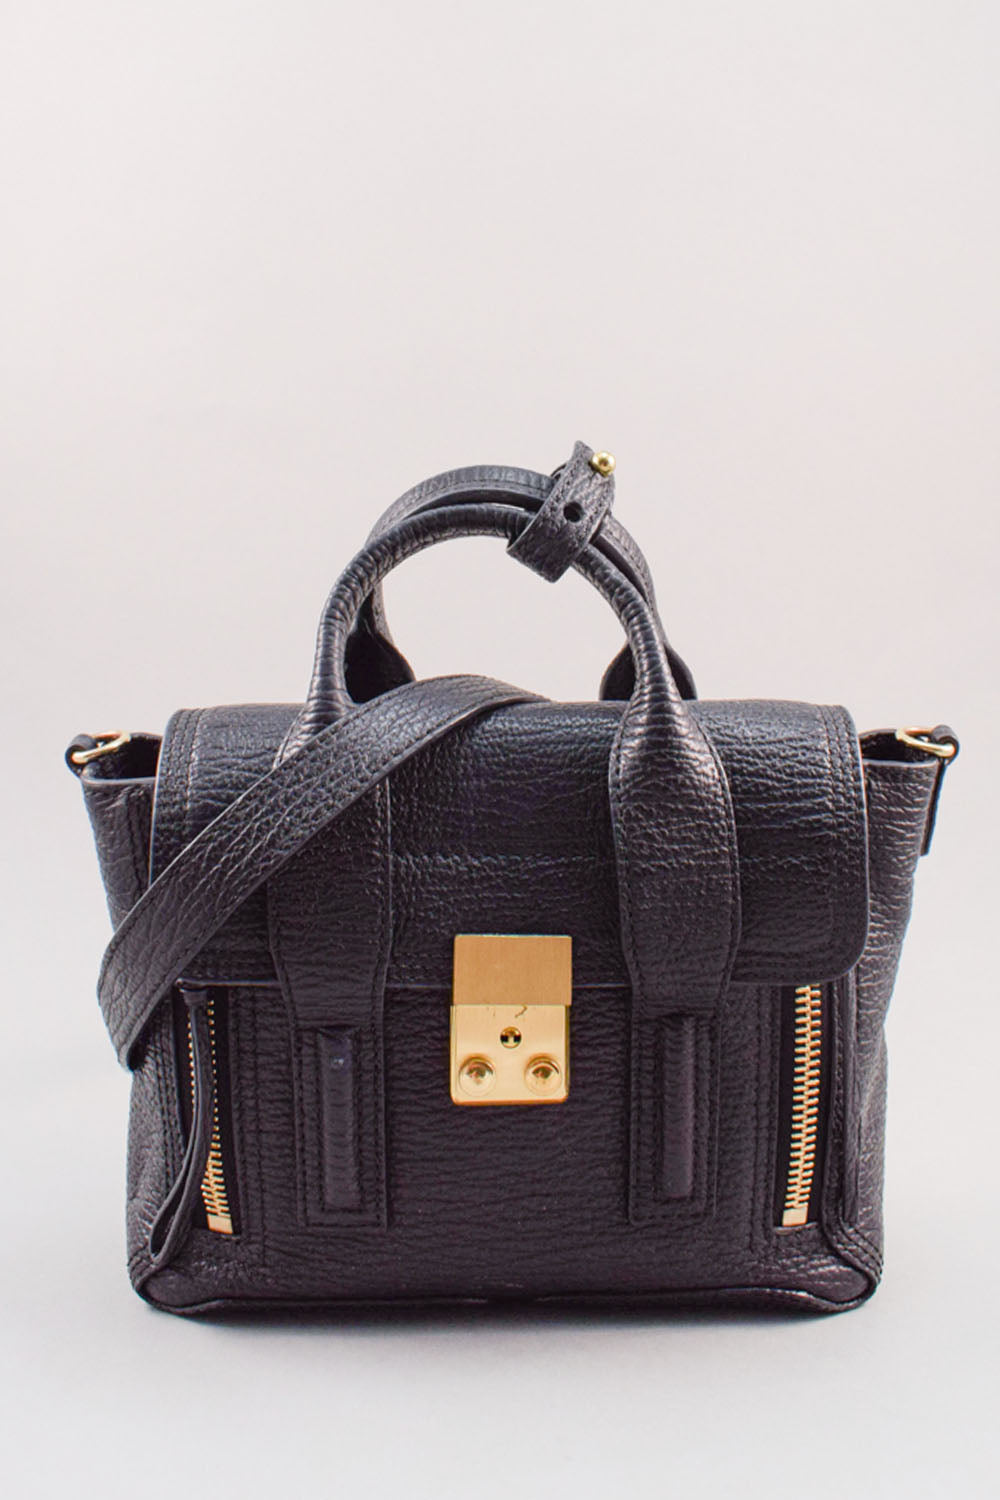 3.1 Phillip Lim Black Mini Pashli